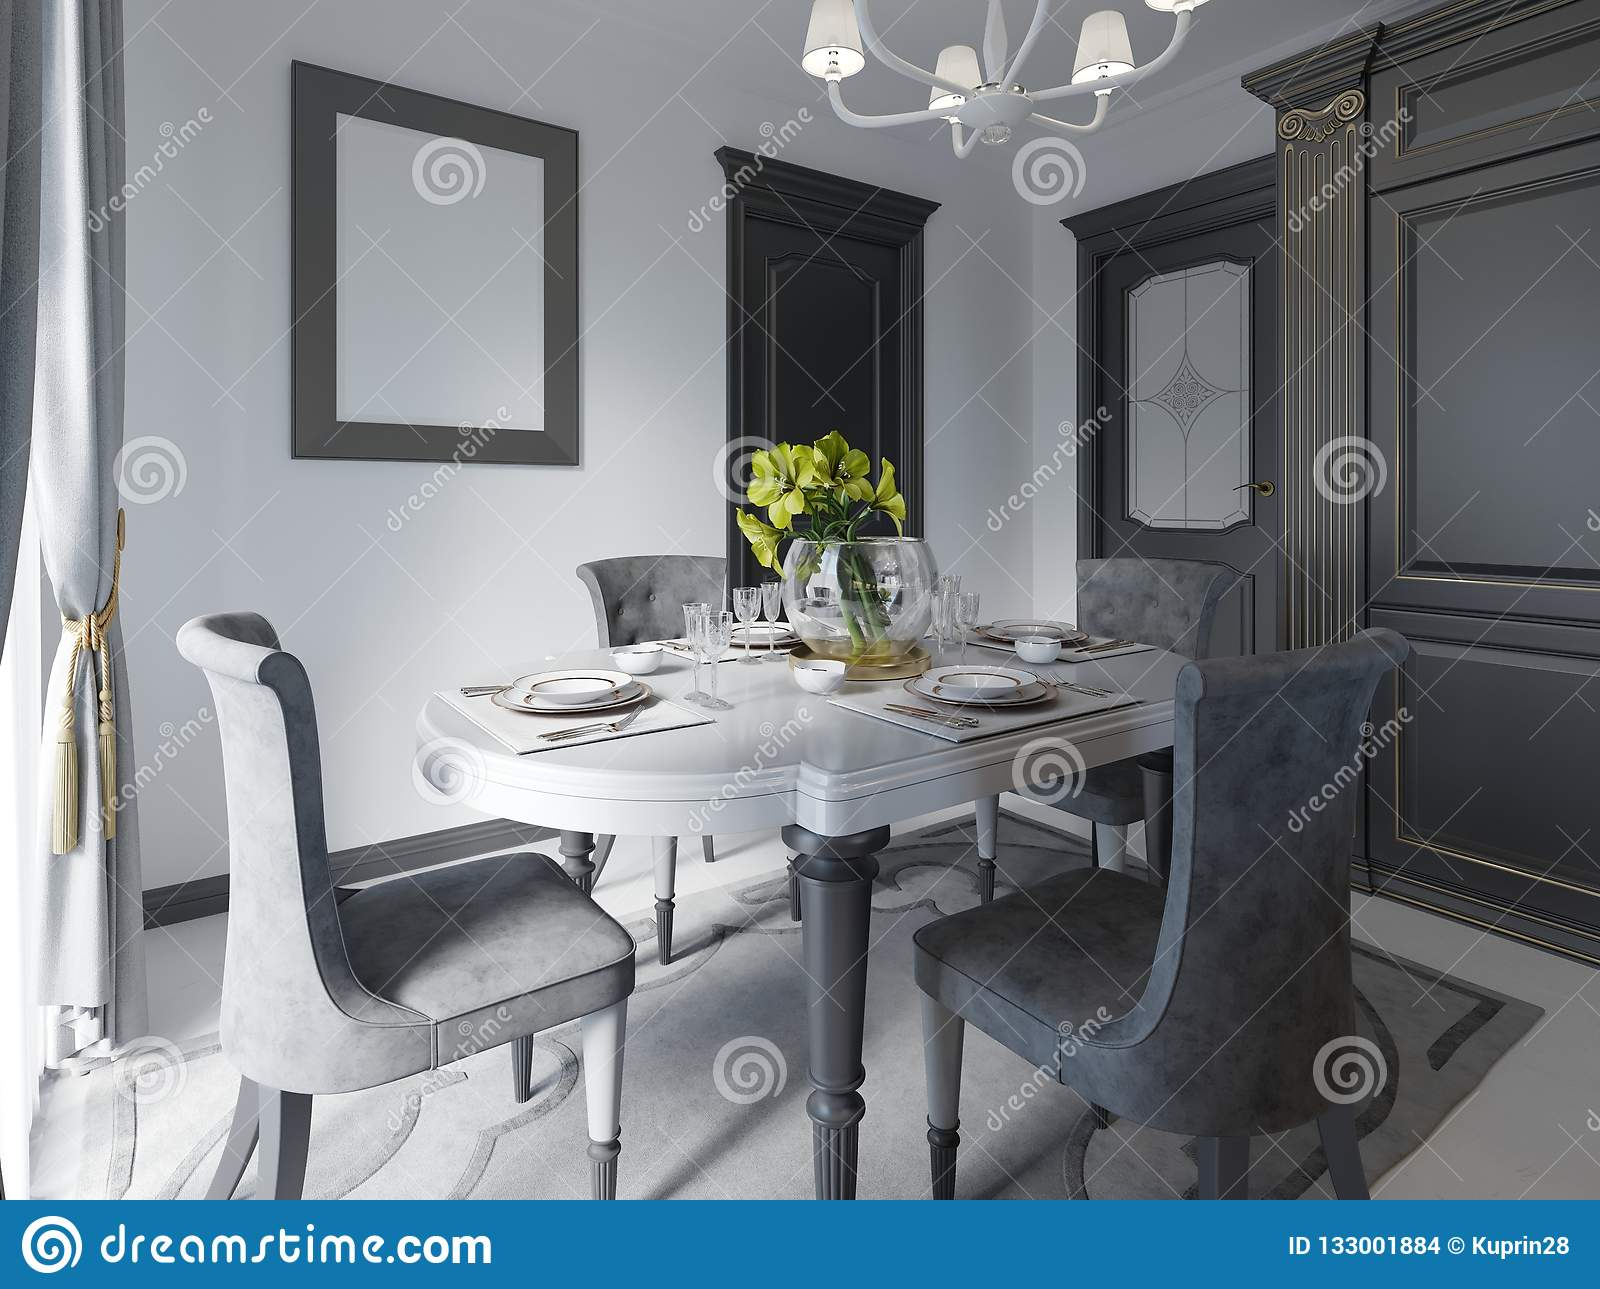 Image of: Luxury Black Dining Room With Dark Furniture White Marble Floor And Day Light Stock Illustration Illustration Of Decor Crystal 133001884